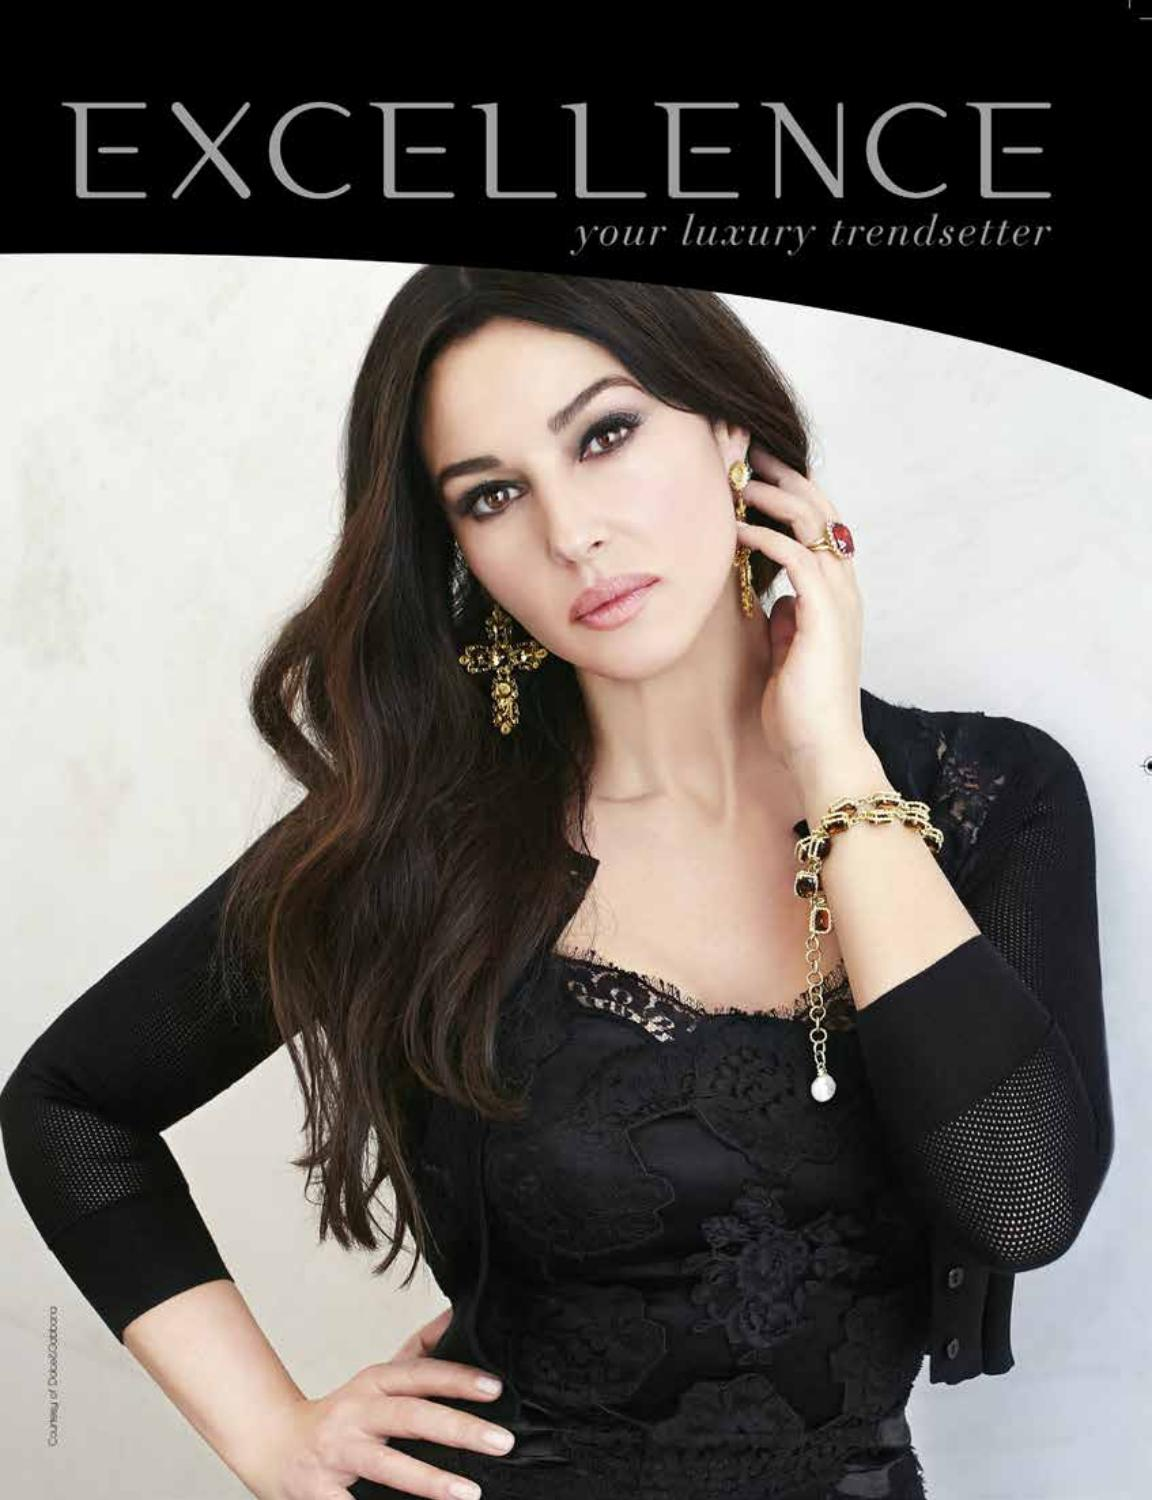 456df3e05ccaa The Excellence Magazine - Vol.8 by Excellence Magazine - issuu